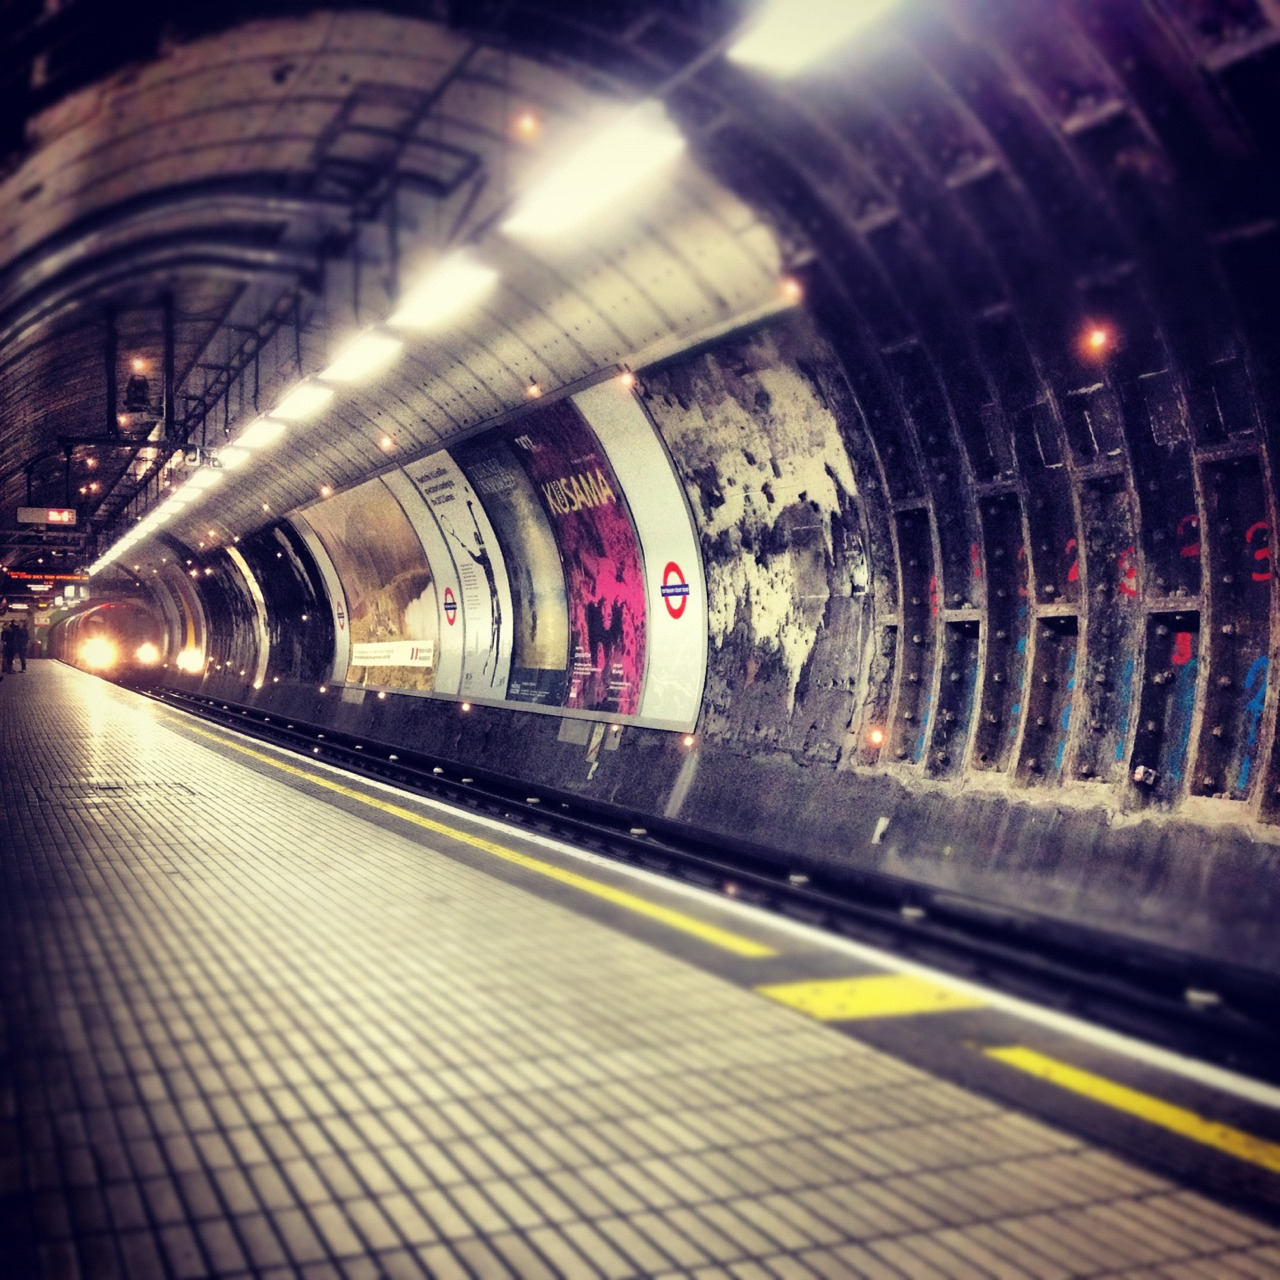 A photo I took on the London Underground.